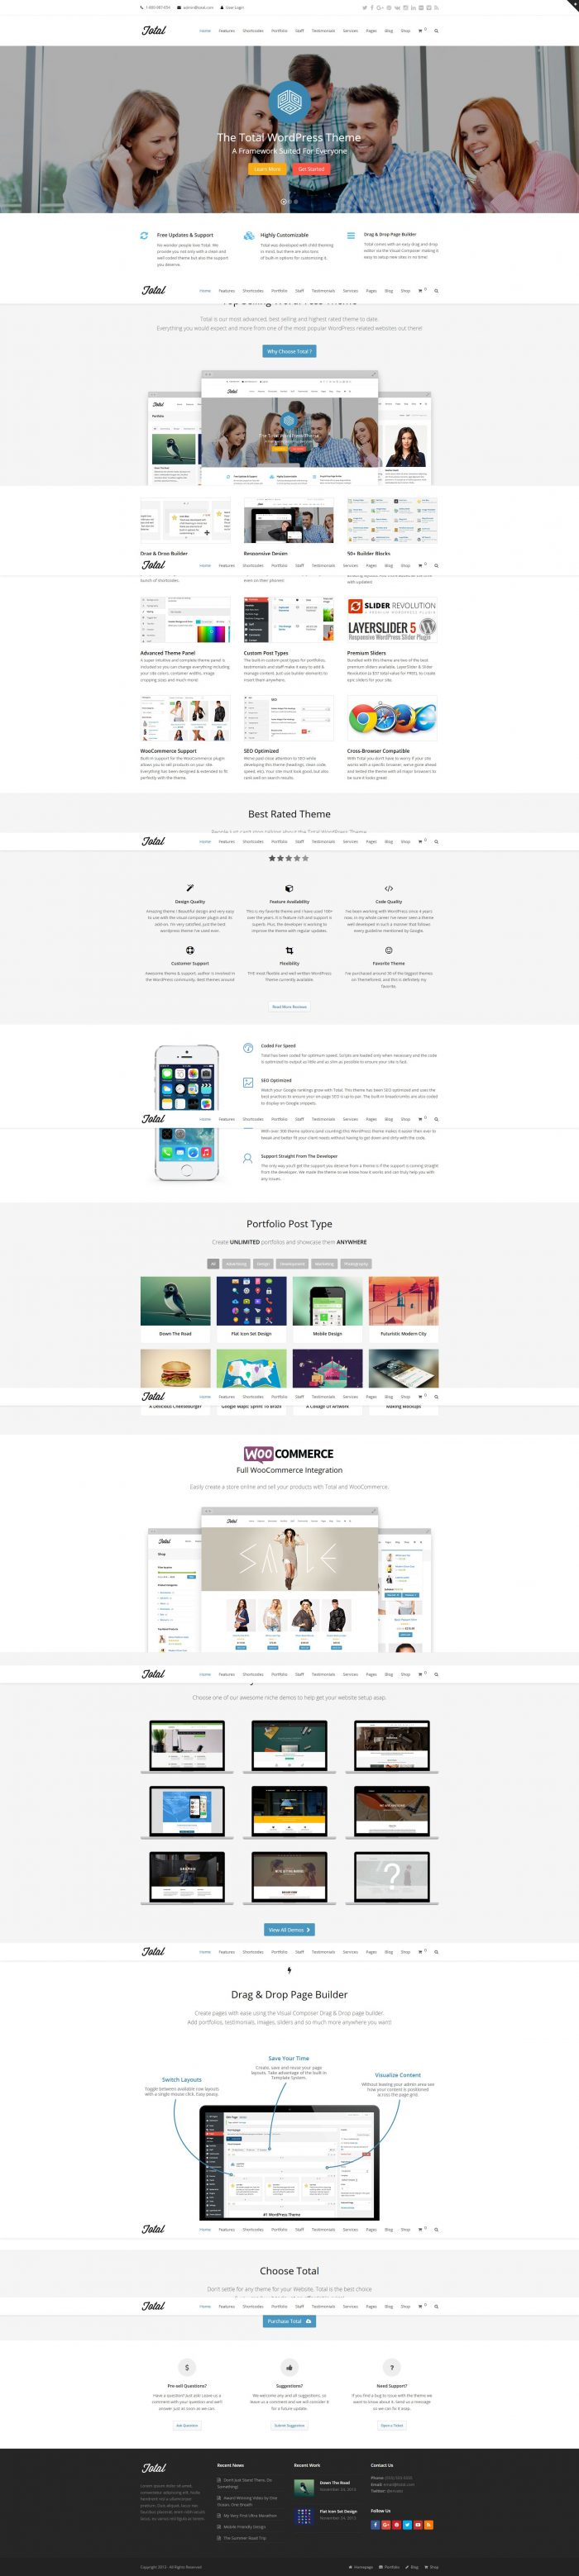 total-plantilla-wordpress